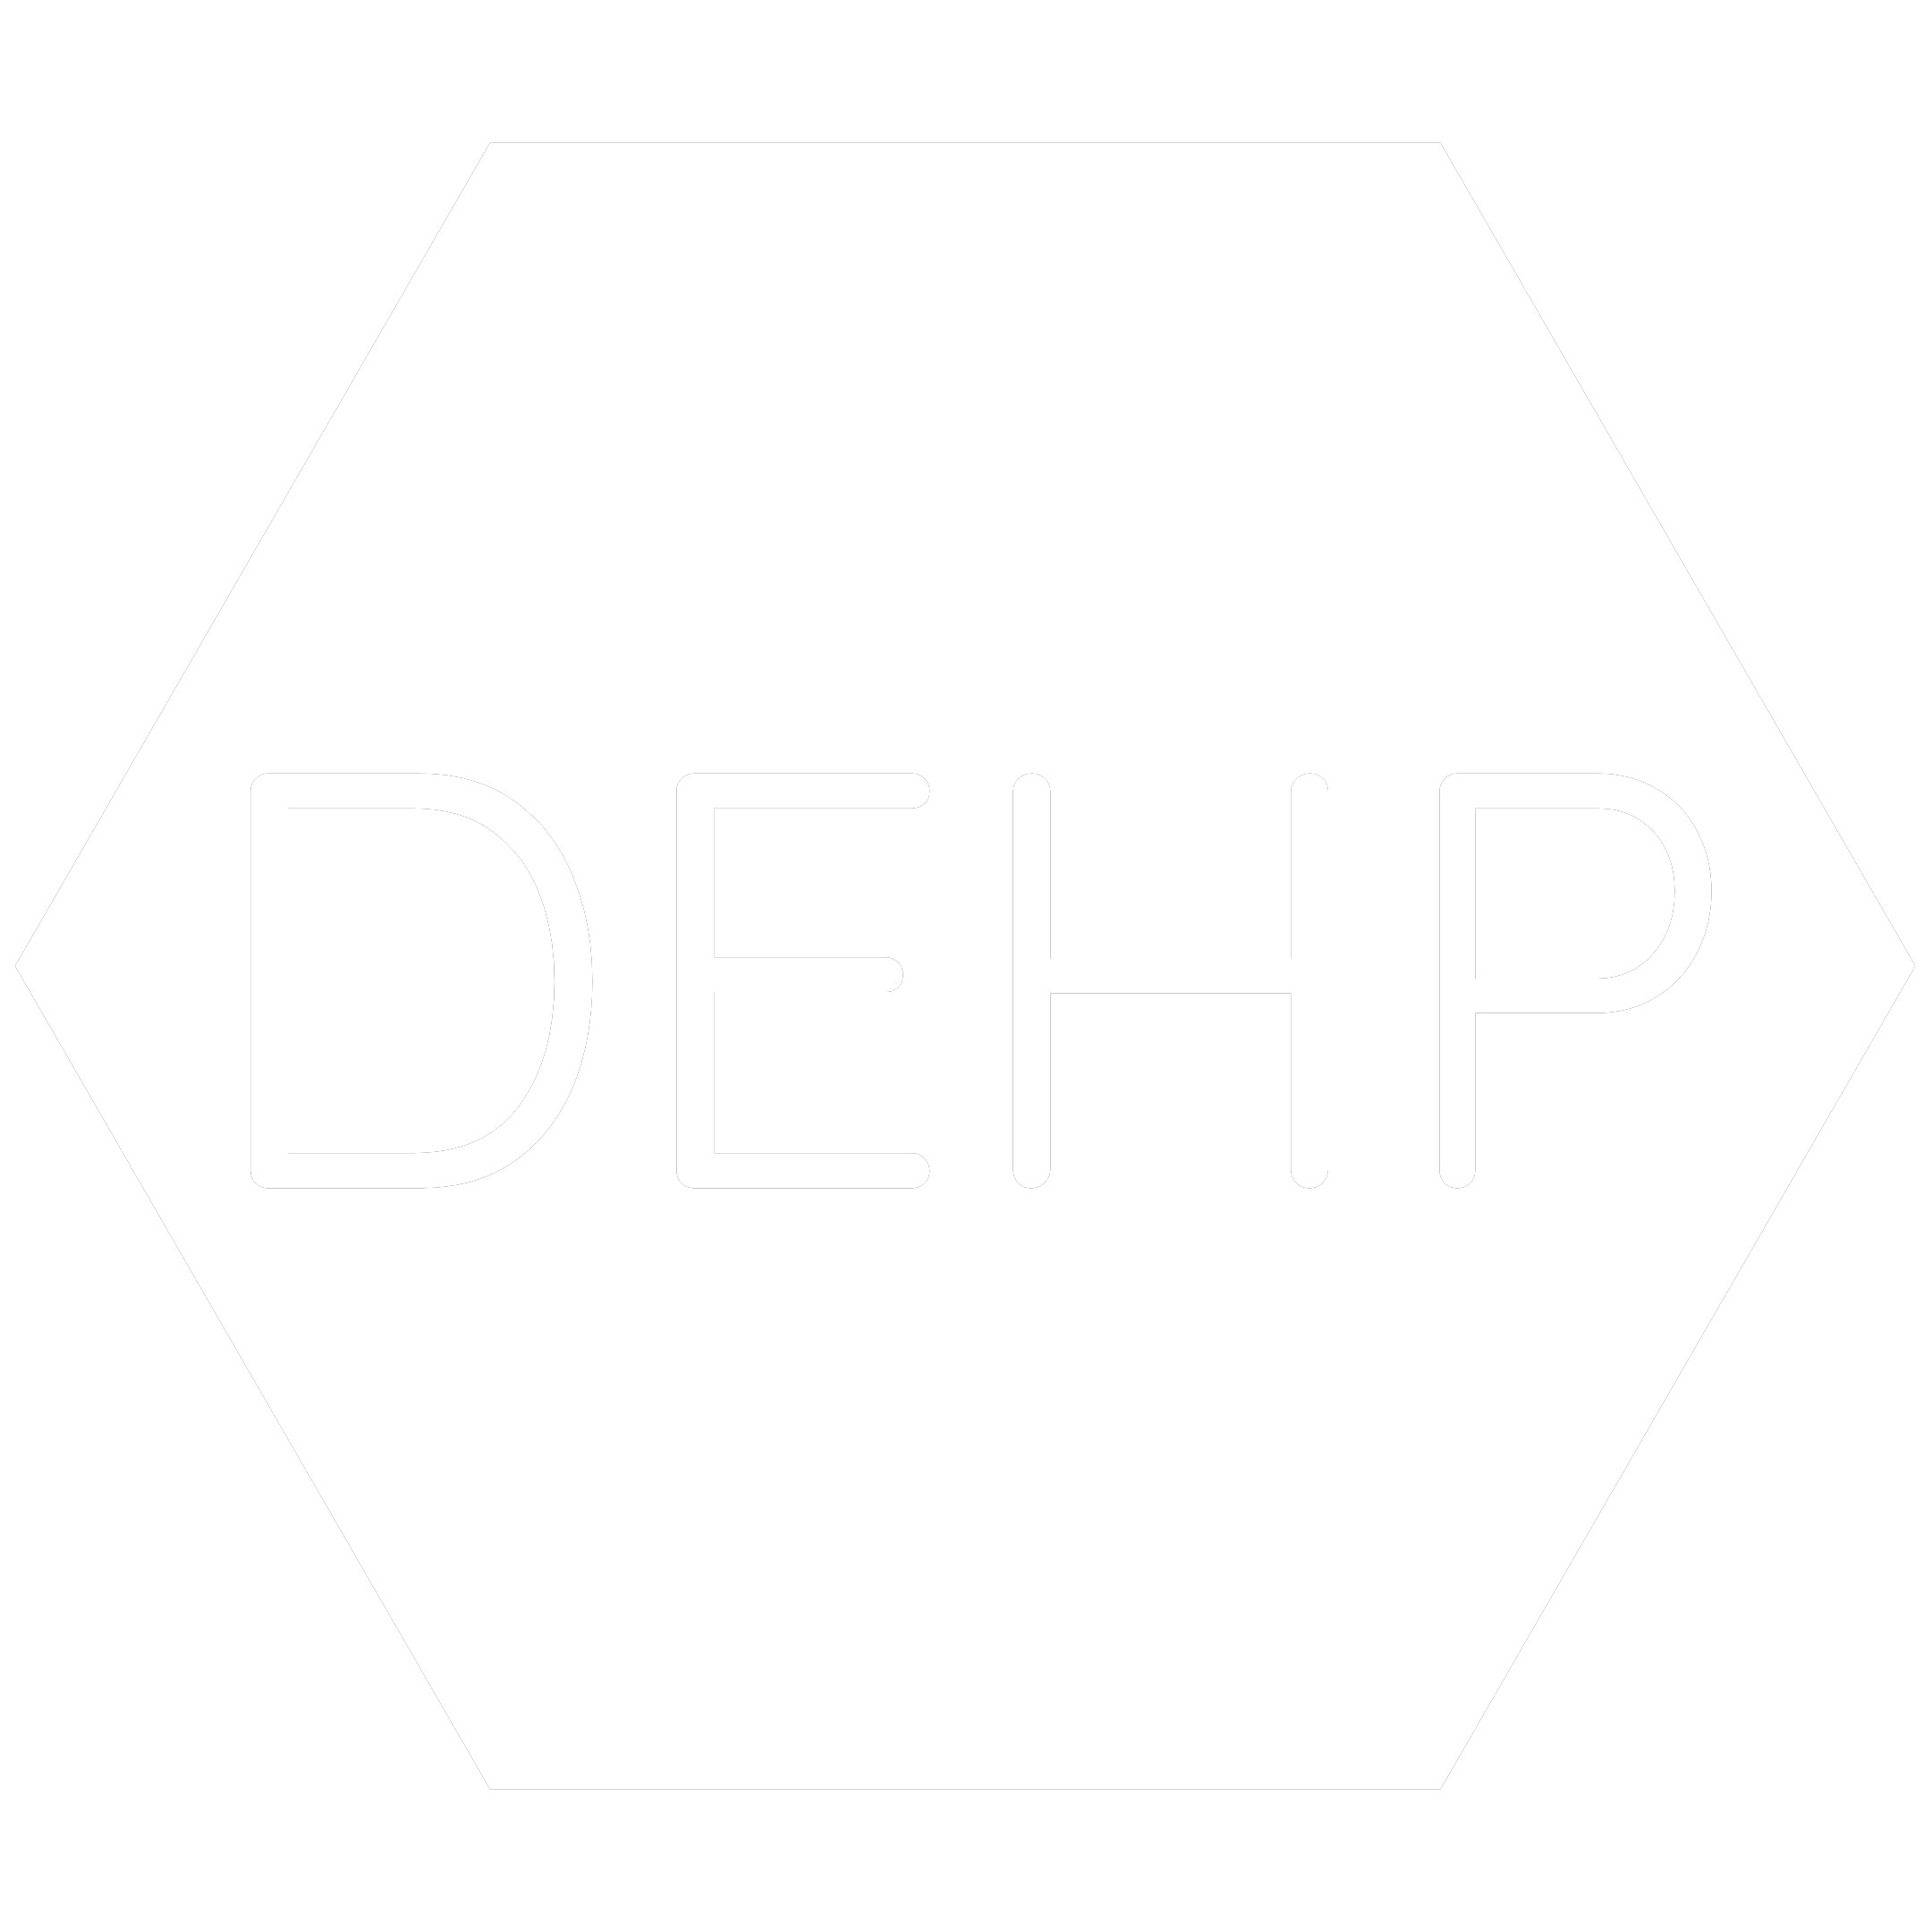 White hexagon icon with the chemical symbol for Bis(2- Ethylhexyl) Phthalate  which is a banned RoHS substance.